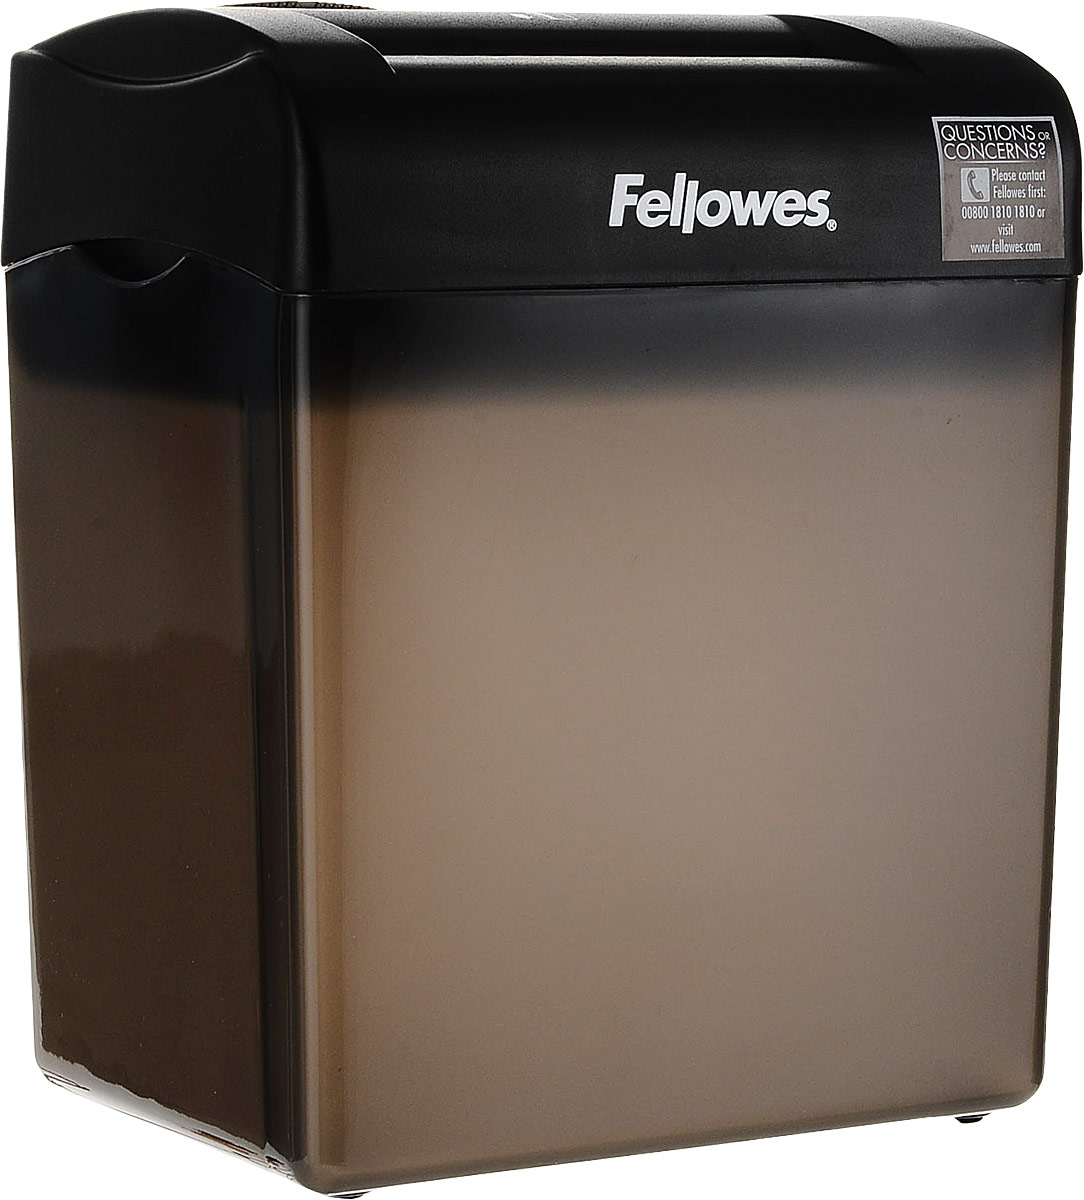 Zakazat.ru Fellowes Powershred Shredmate, Black шредер